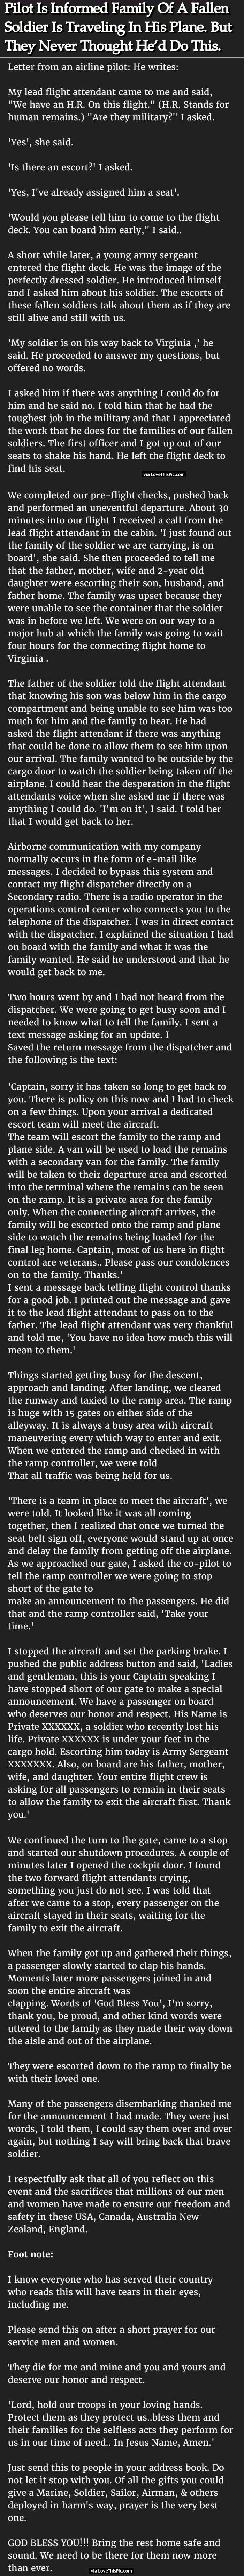 Pilot Is Informed Family Of A Fallen Soldier Is Traveling In His Plane But They Never Thought He'd Do This. family military people amazing story interesting facts stories heart warming good people